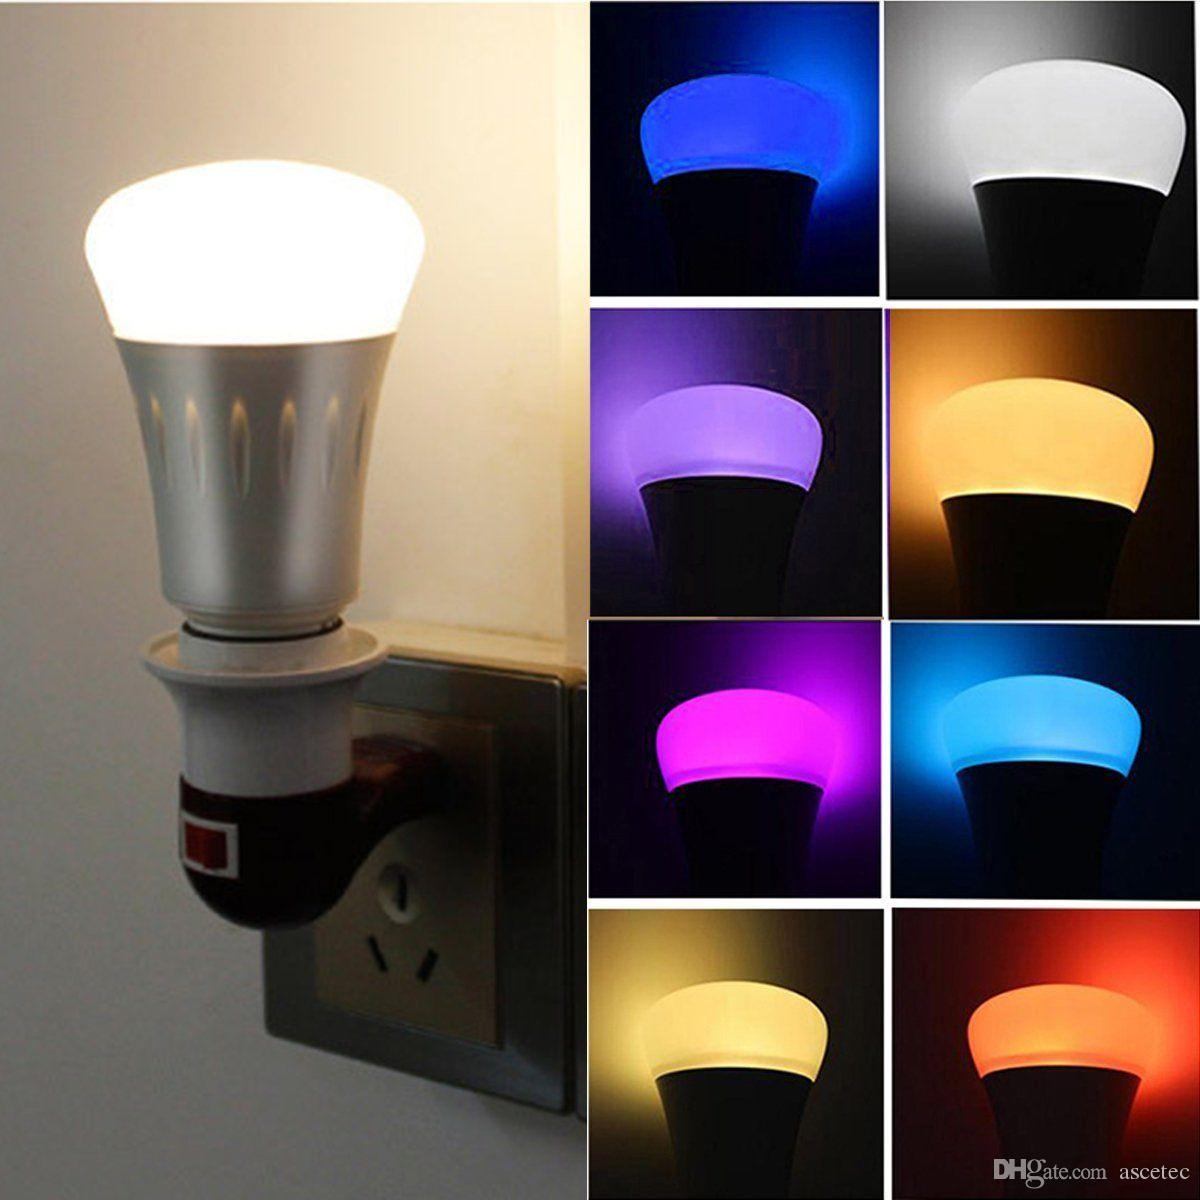 Smart LED Light Alexa Bulb Wi-Fi Regulable RGBW Cambio de color Luces de fiesta La bombilla funciona con Echo Alexa